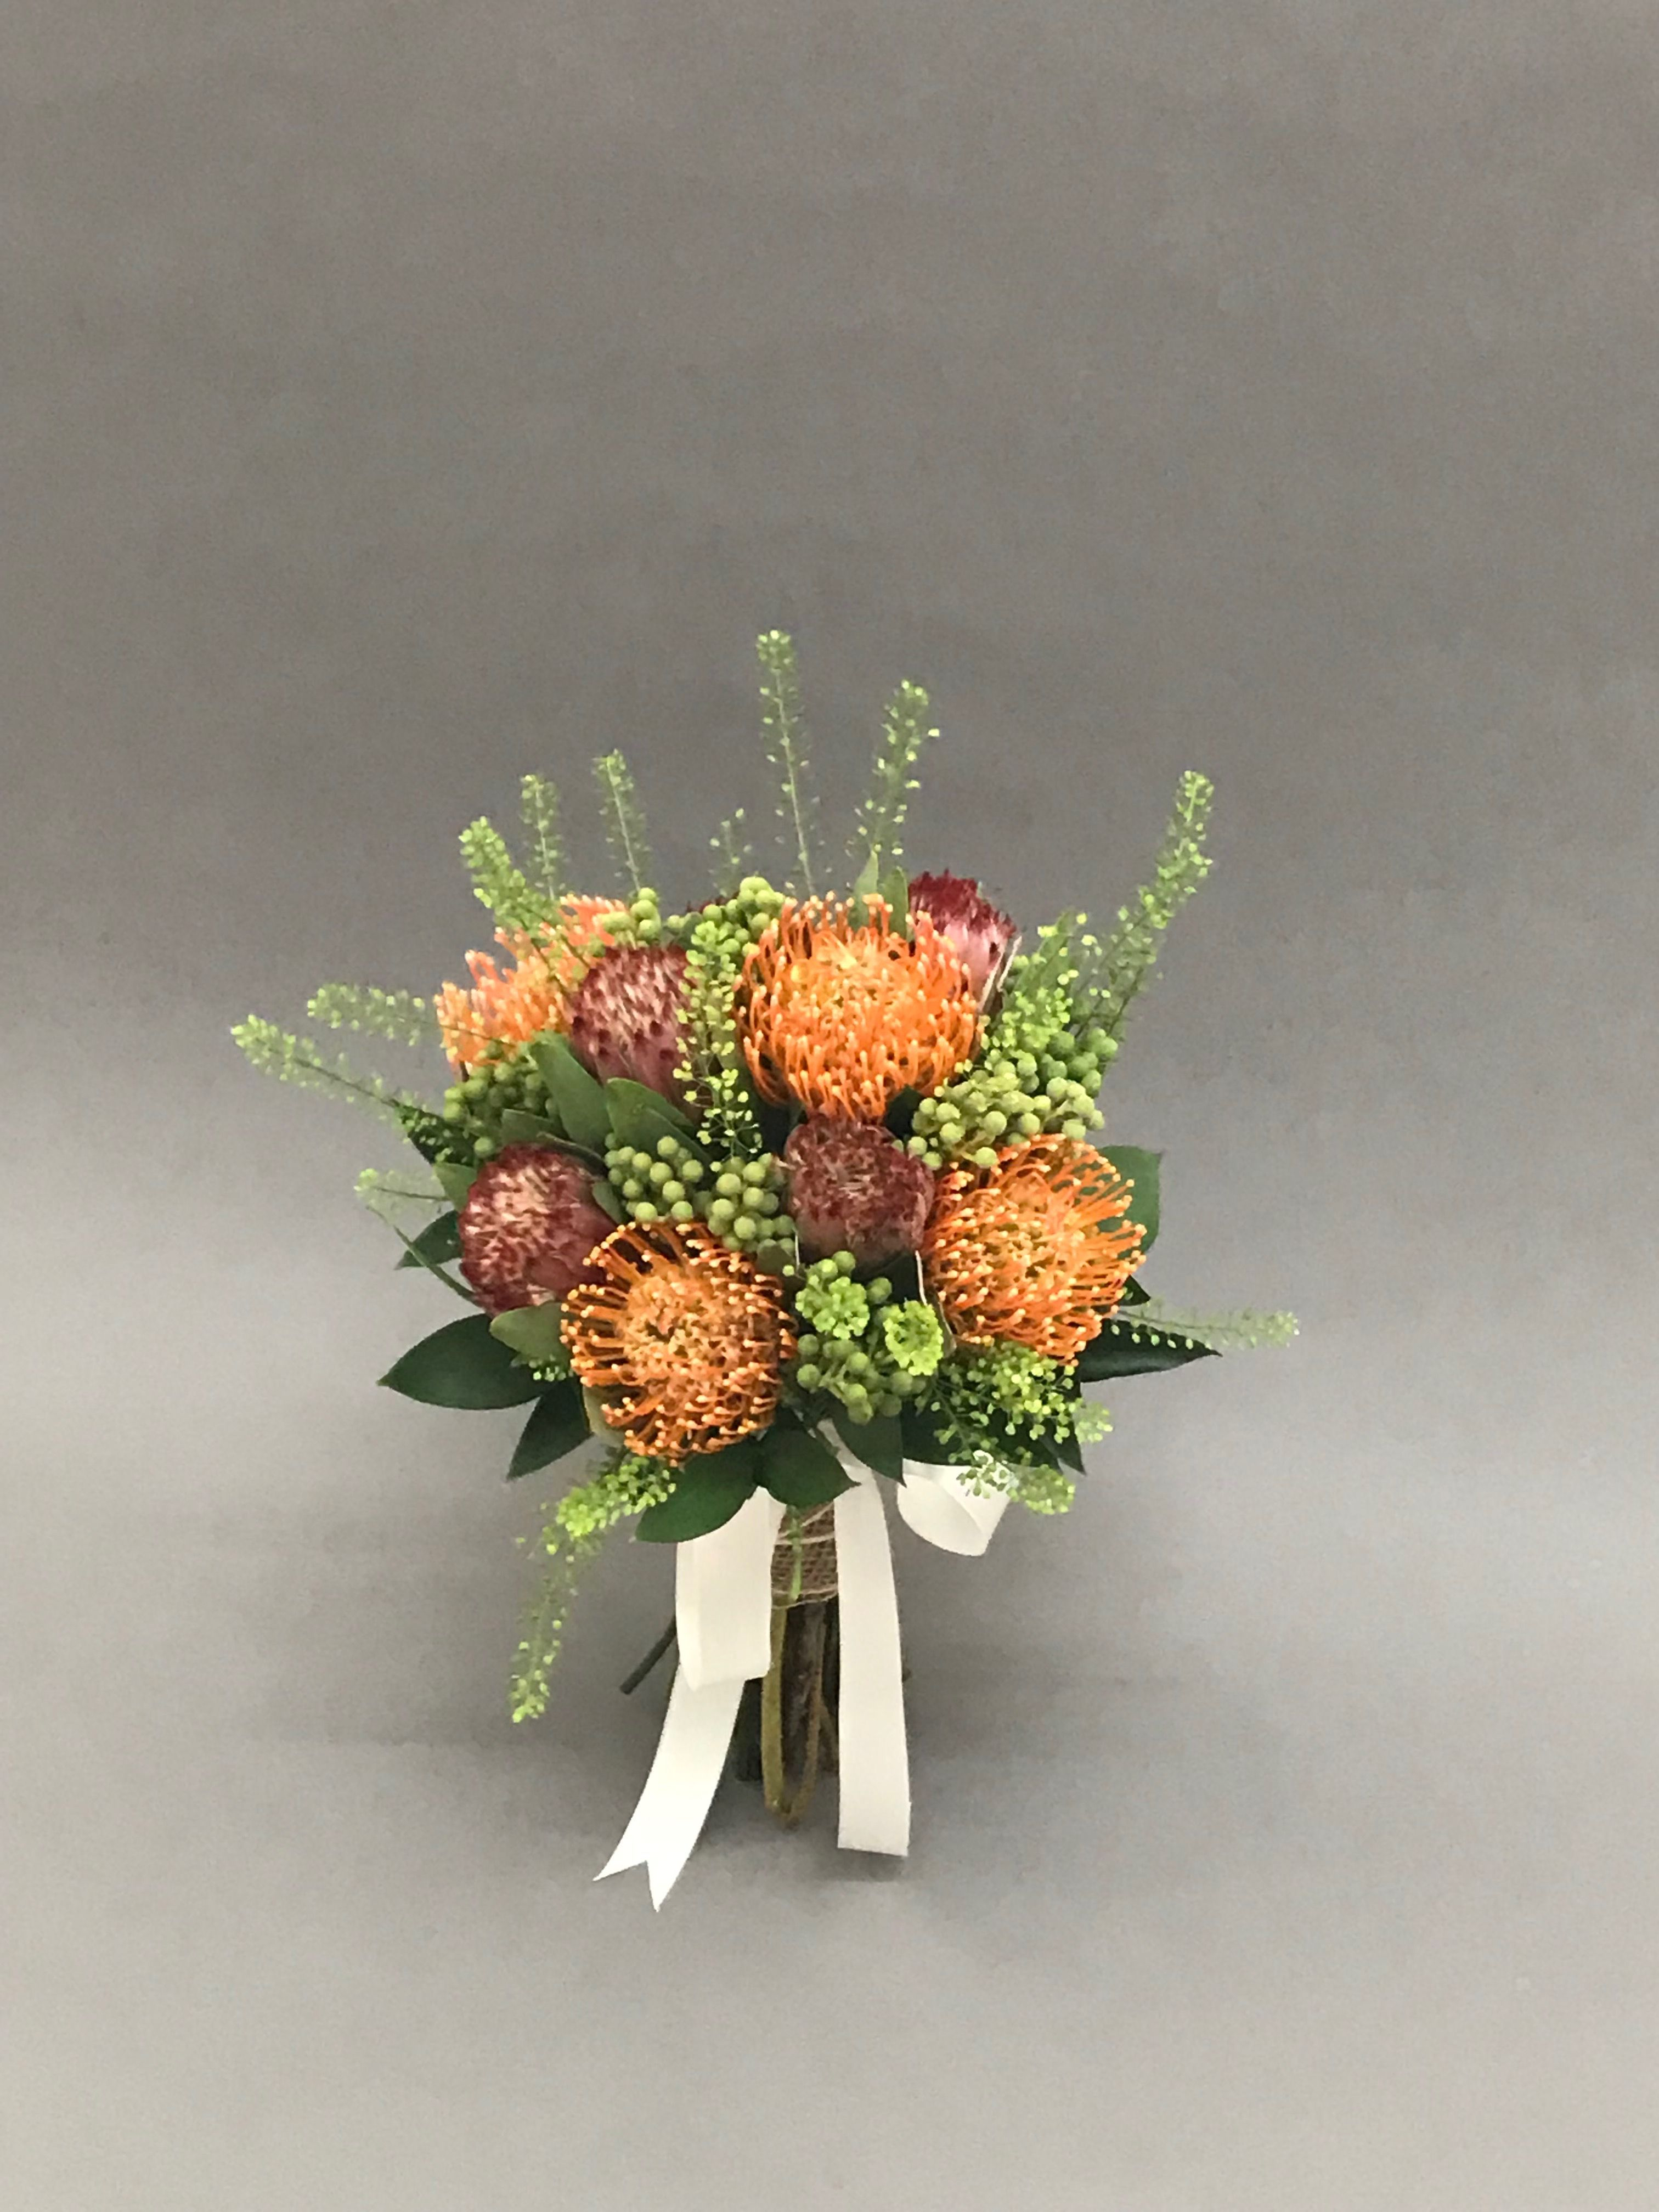 Flower Arrangements For A Broad Range Of Different Occasions Great Florist 24 7 Customer Support Free Same Day Flower Delivery Flower Delivery Fast Flowers